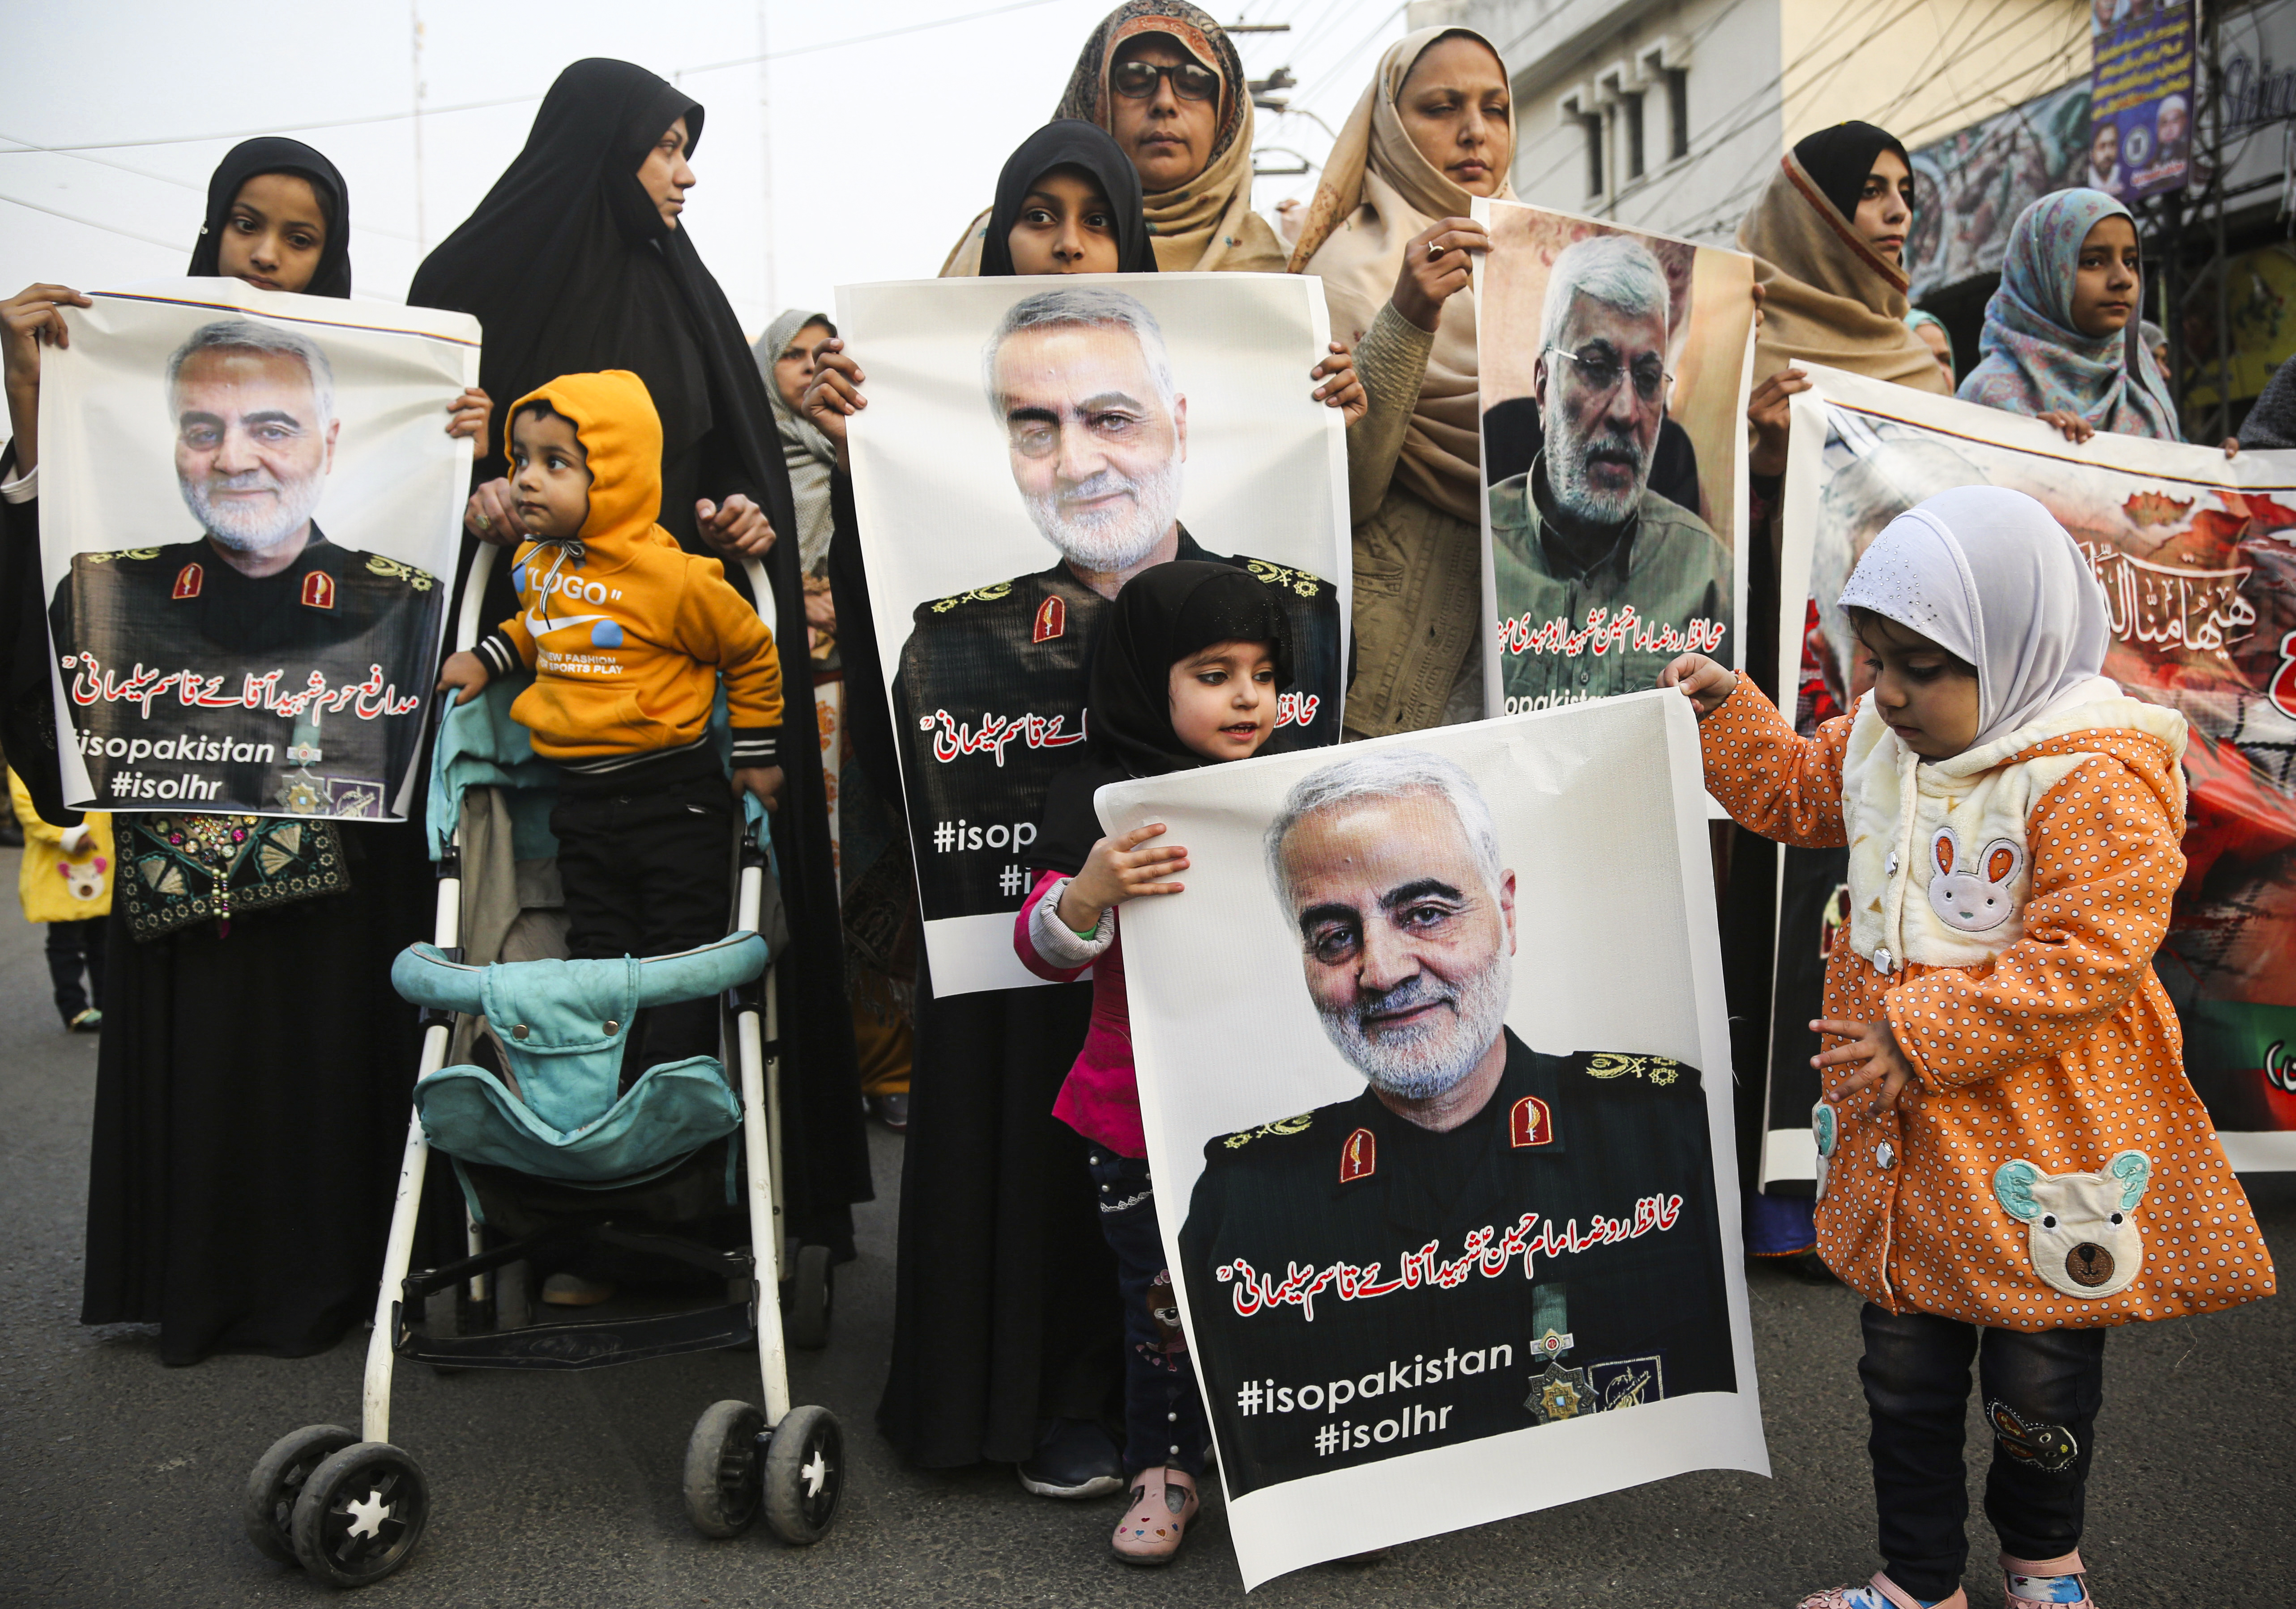 At a protest in Pakistan, women and children hold posters and signs depicting Qassem Soleimani, the Iranian military leader killed in a US airstrike in Iraq.